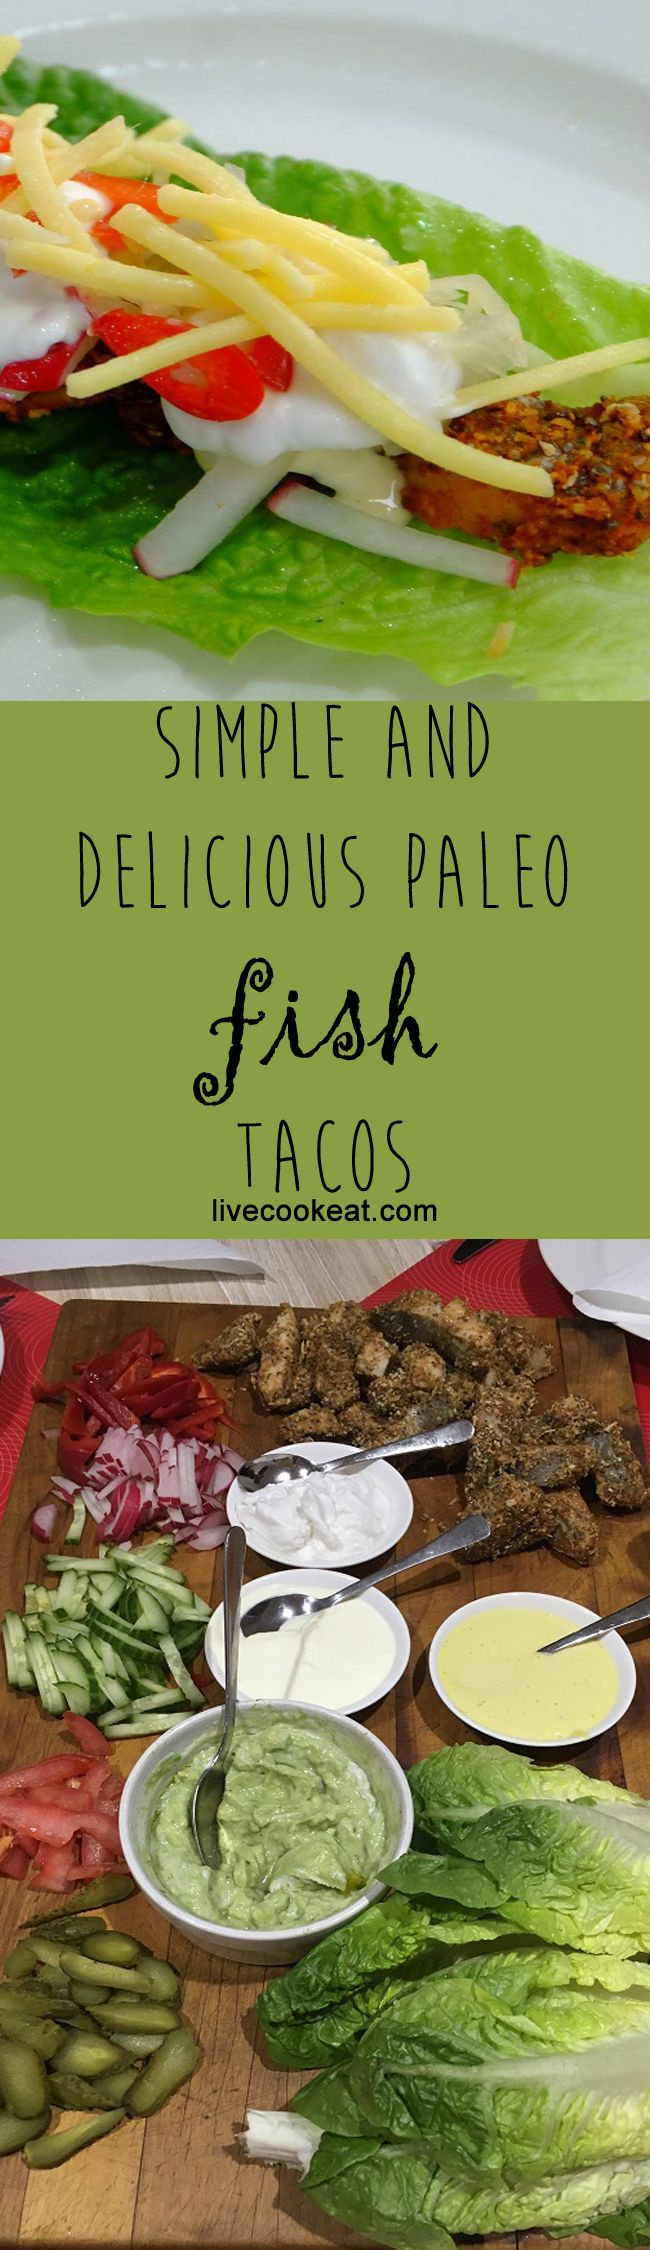 Fish-Tacos, simple, delicious and budget friendly